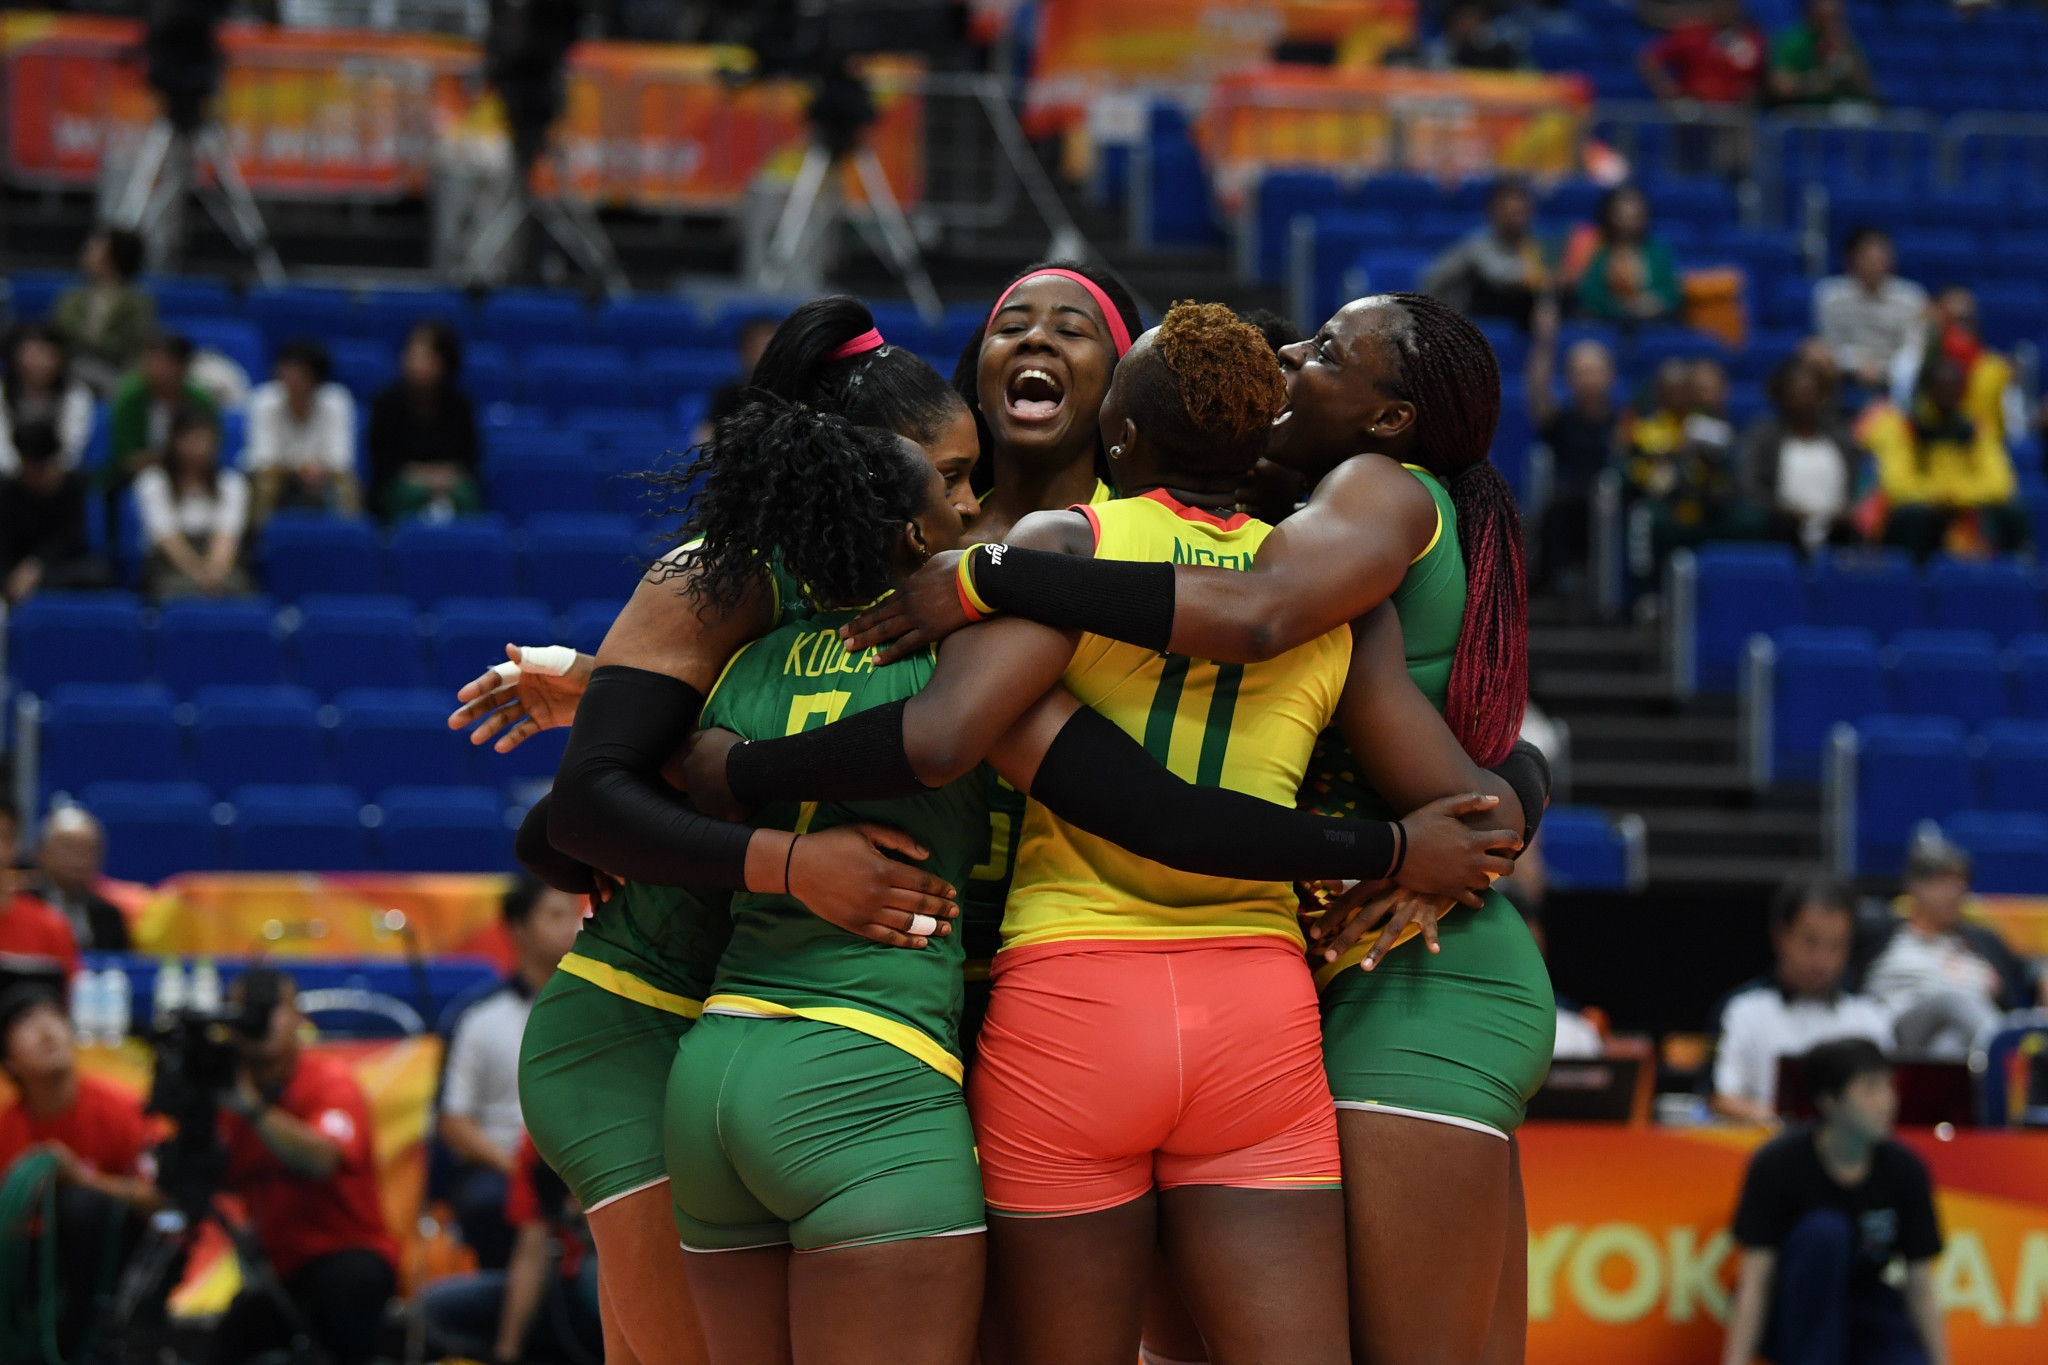 Cameroon won their first ever game at the Women's Volleyball World Championships in Japan, with the FIVB President showing this as an example of volleyball's growth around the world ©Getty Images